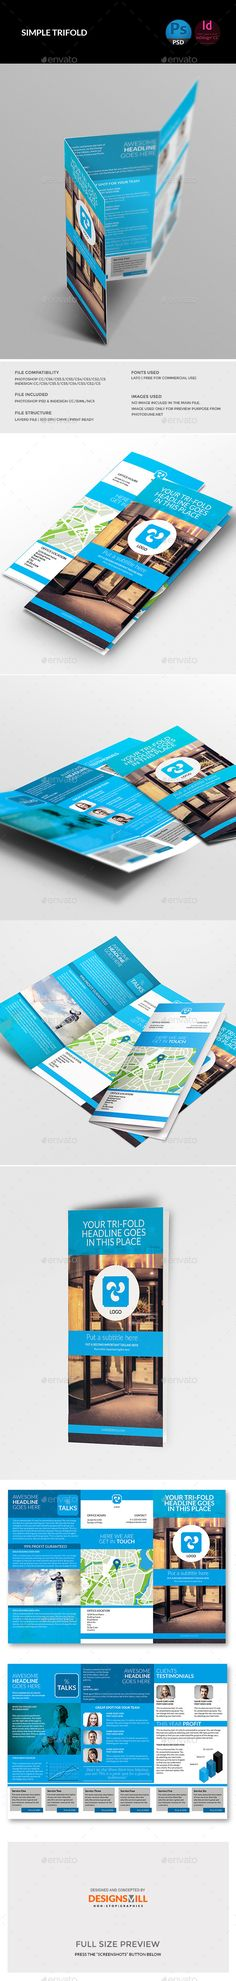 Trifold Brochure - Corporate Brochure Template PSD, InDesign INDD. Download here: http://graphicriver.net/item/trifold-brochure/11351414?s_rank=1766&ref=yinkira